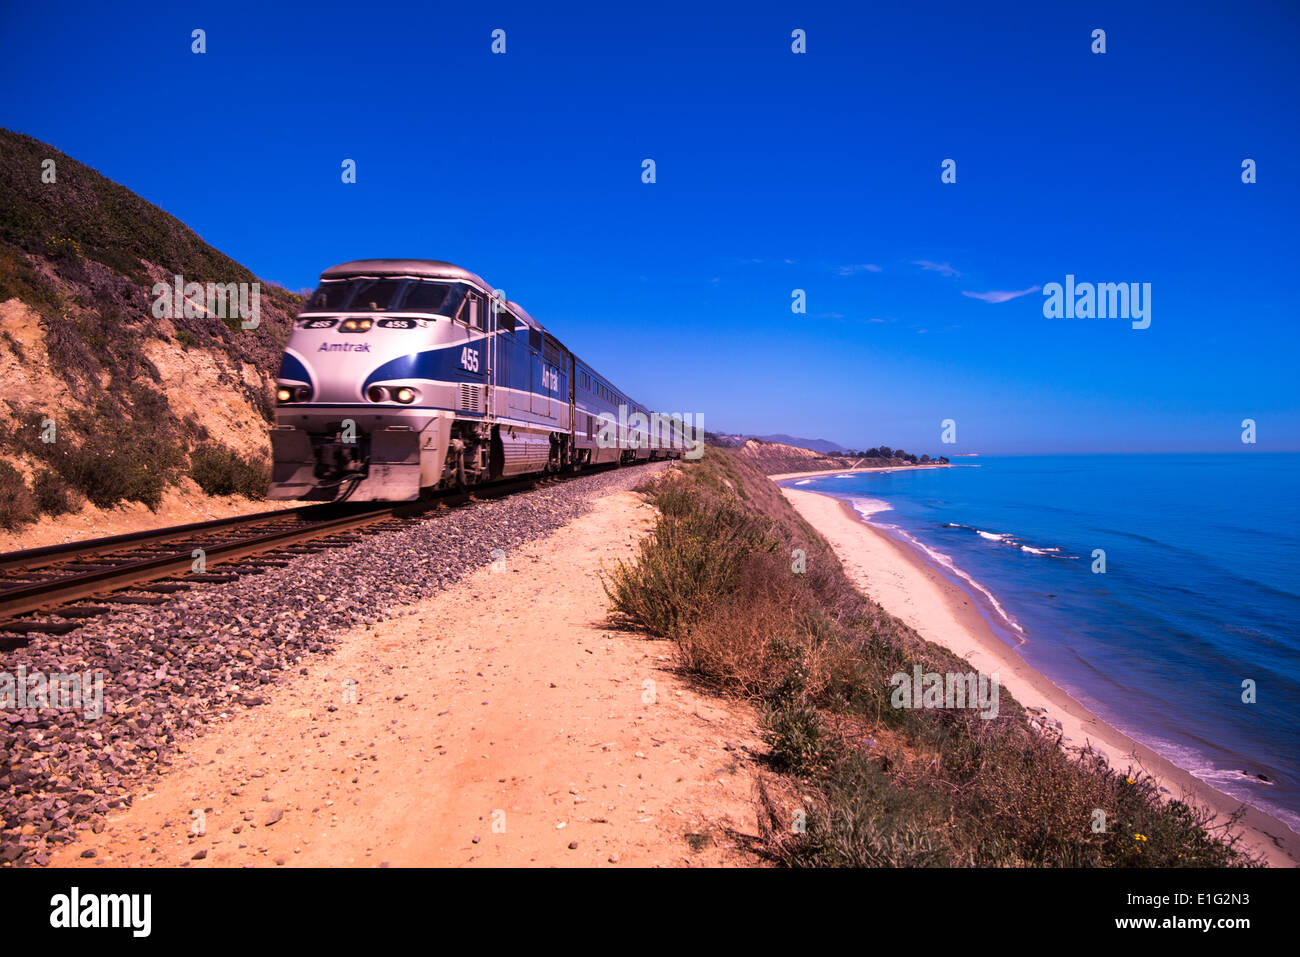 Surfliner express passenger train runs on tracks along Pacific Ocean near Rincon Beach; Central California, California, USA - Stock Image